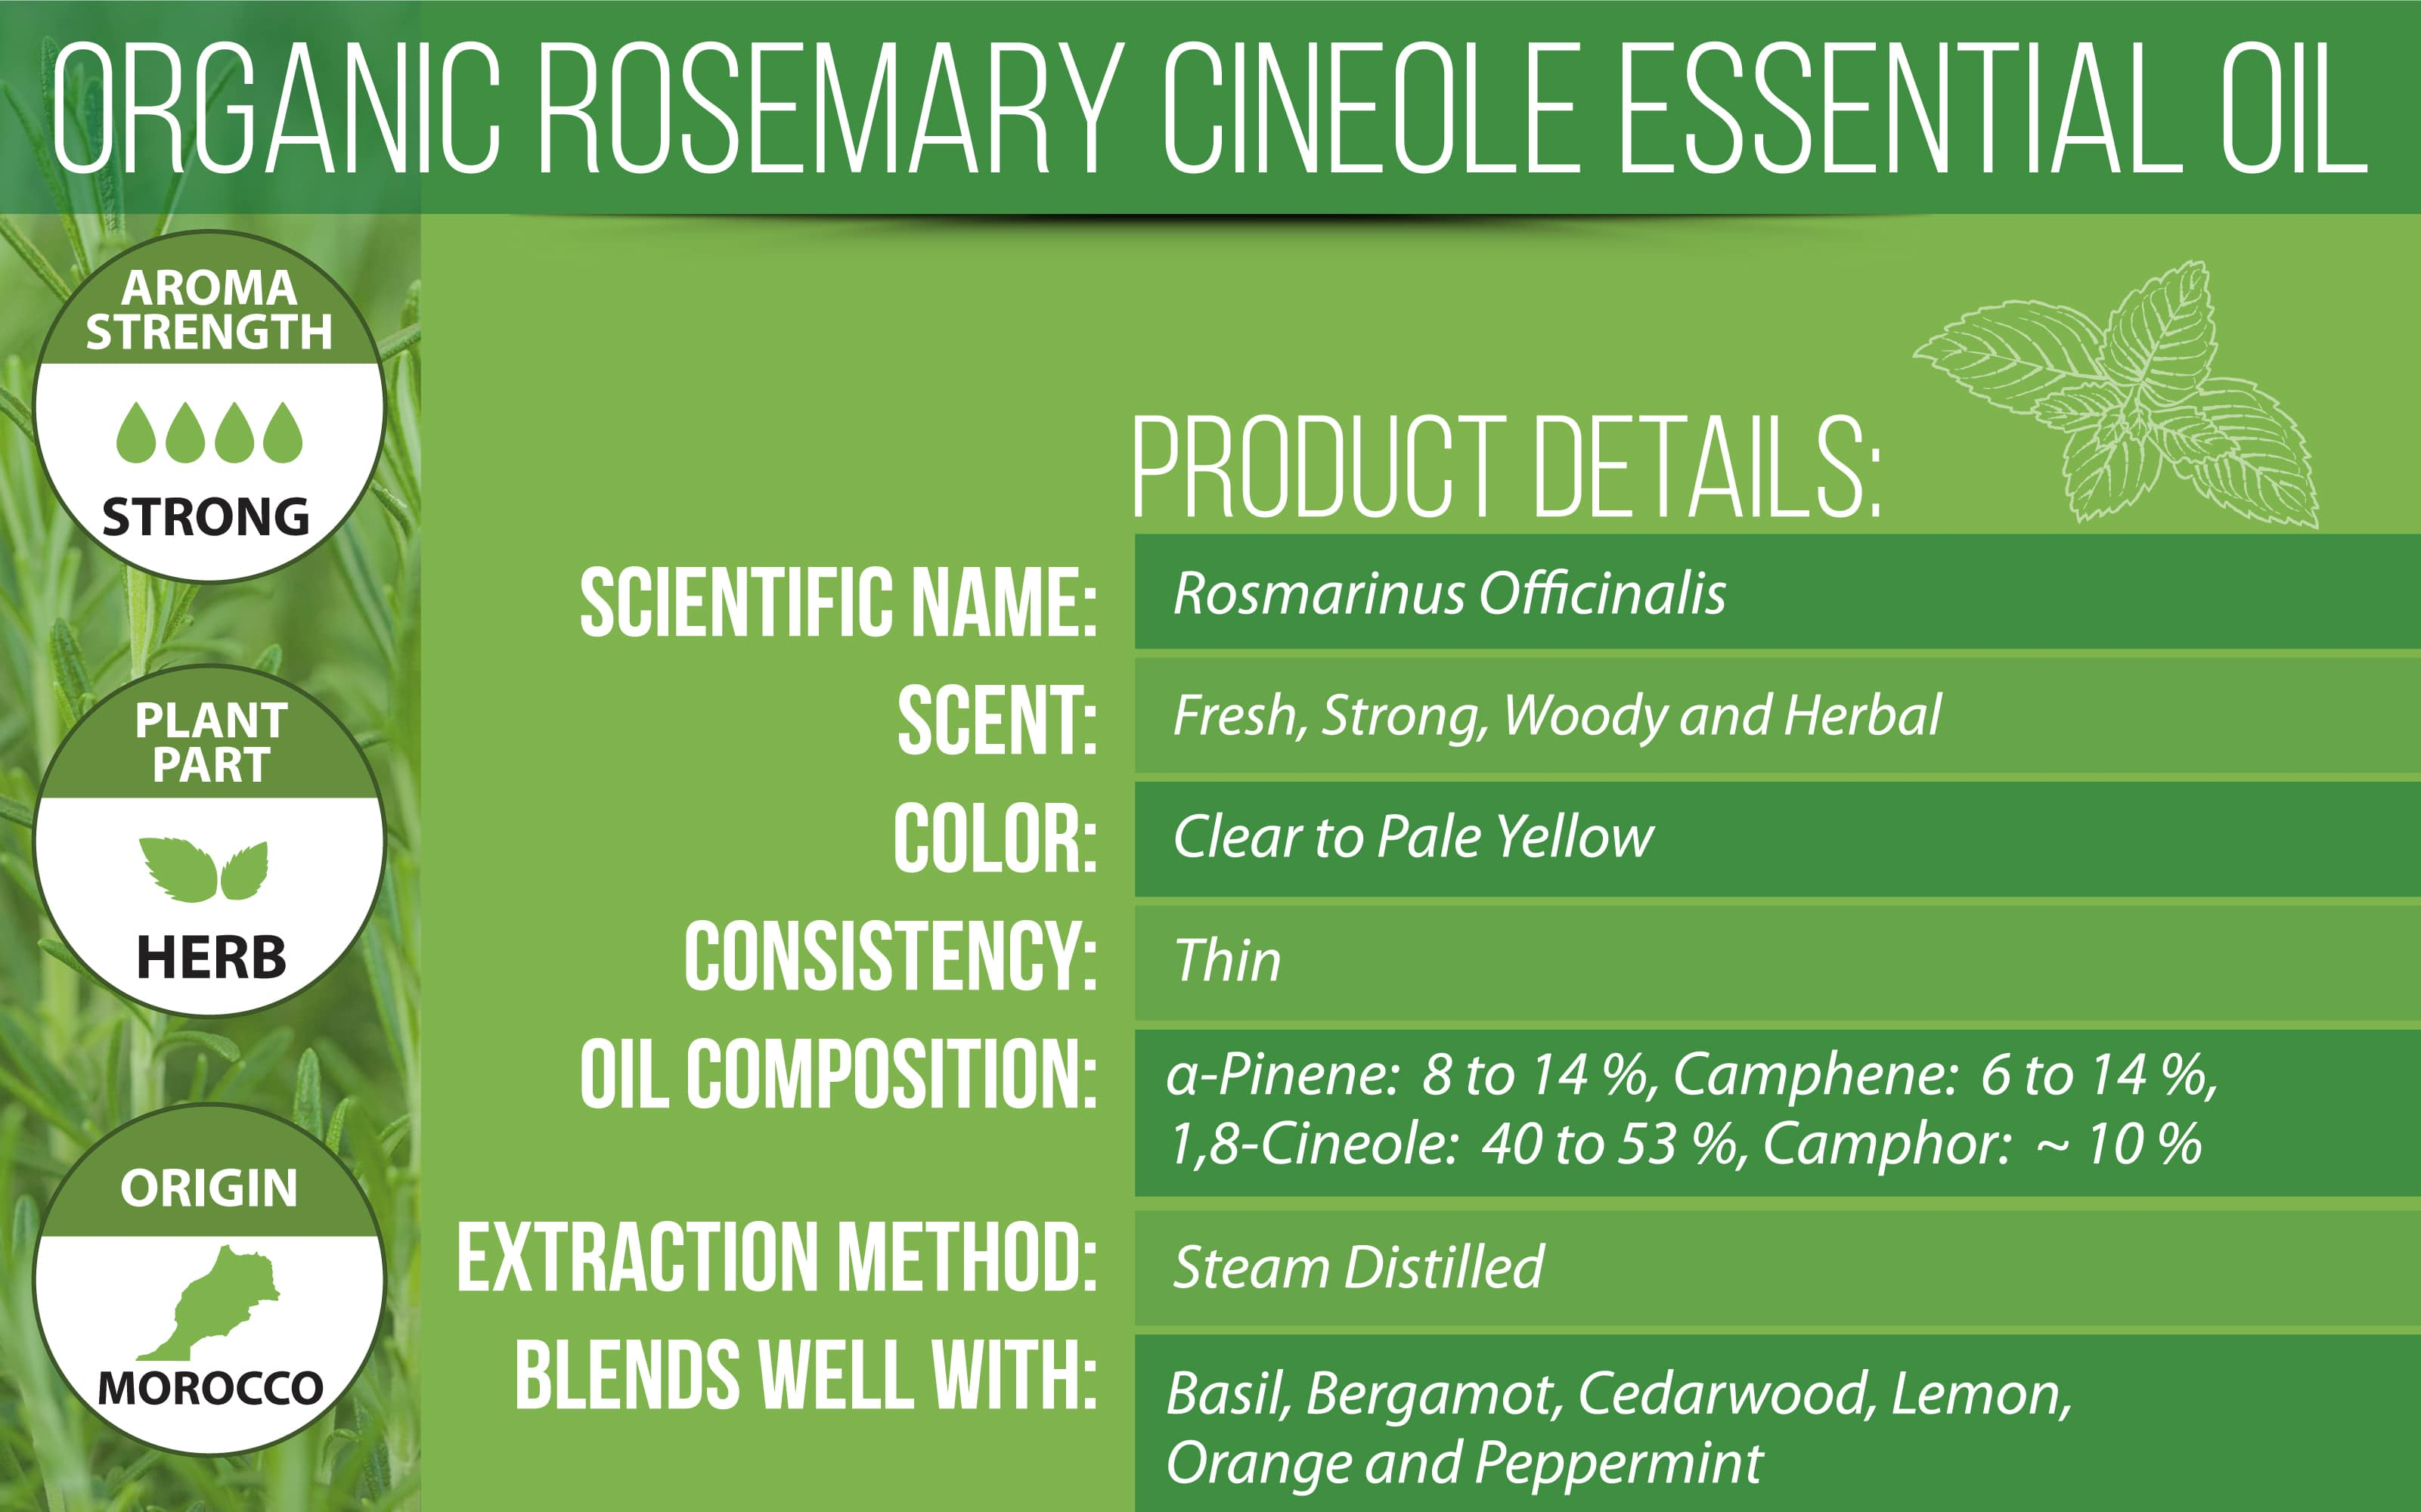 Organic Rosemary Essential Oil Product Details